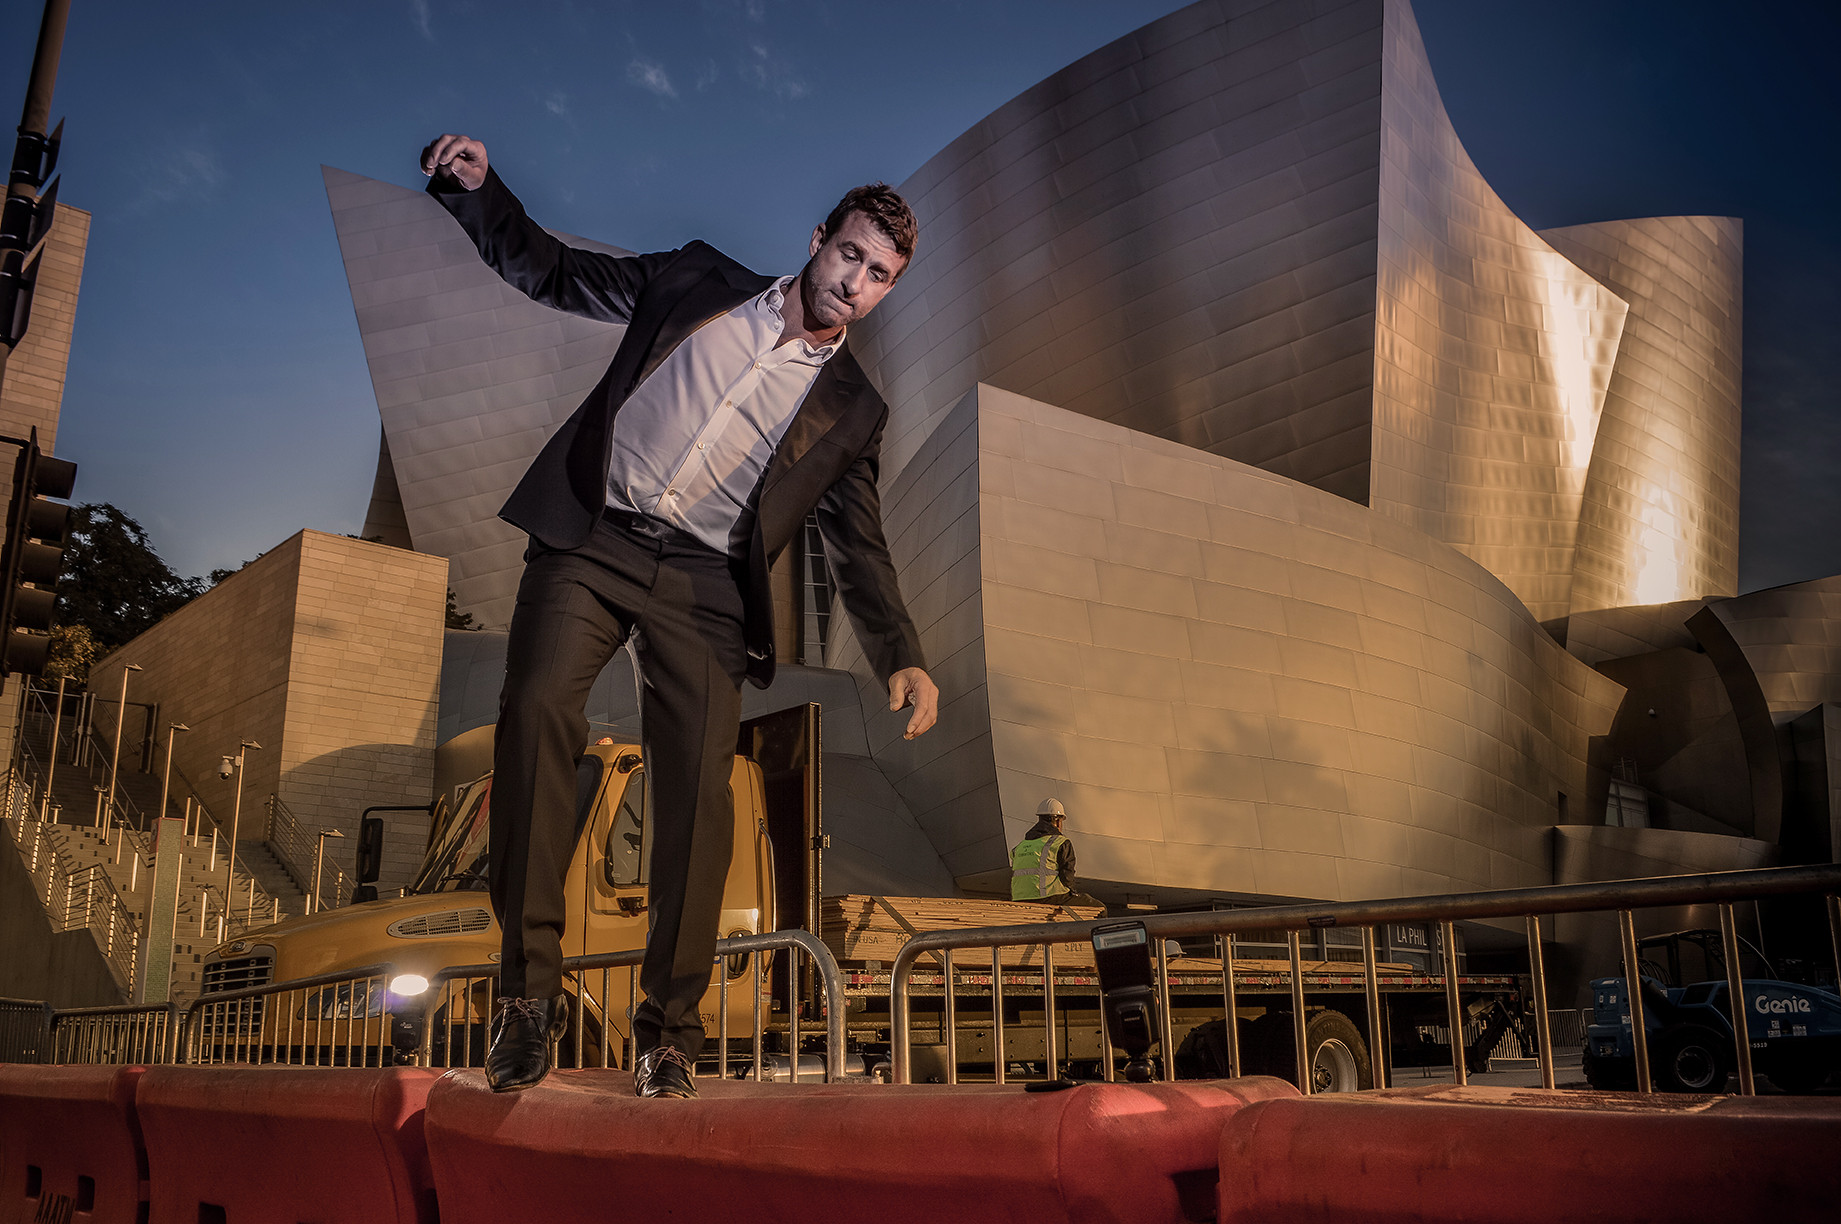 Disney Concert Hall by Stefan Pinto